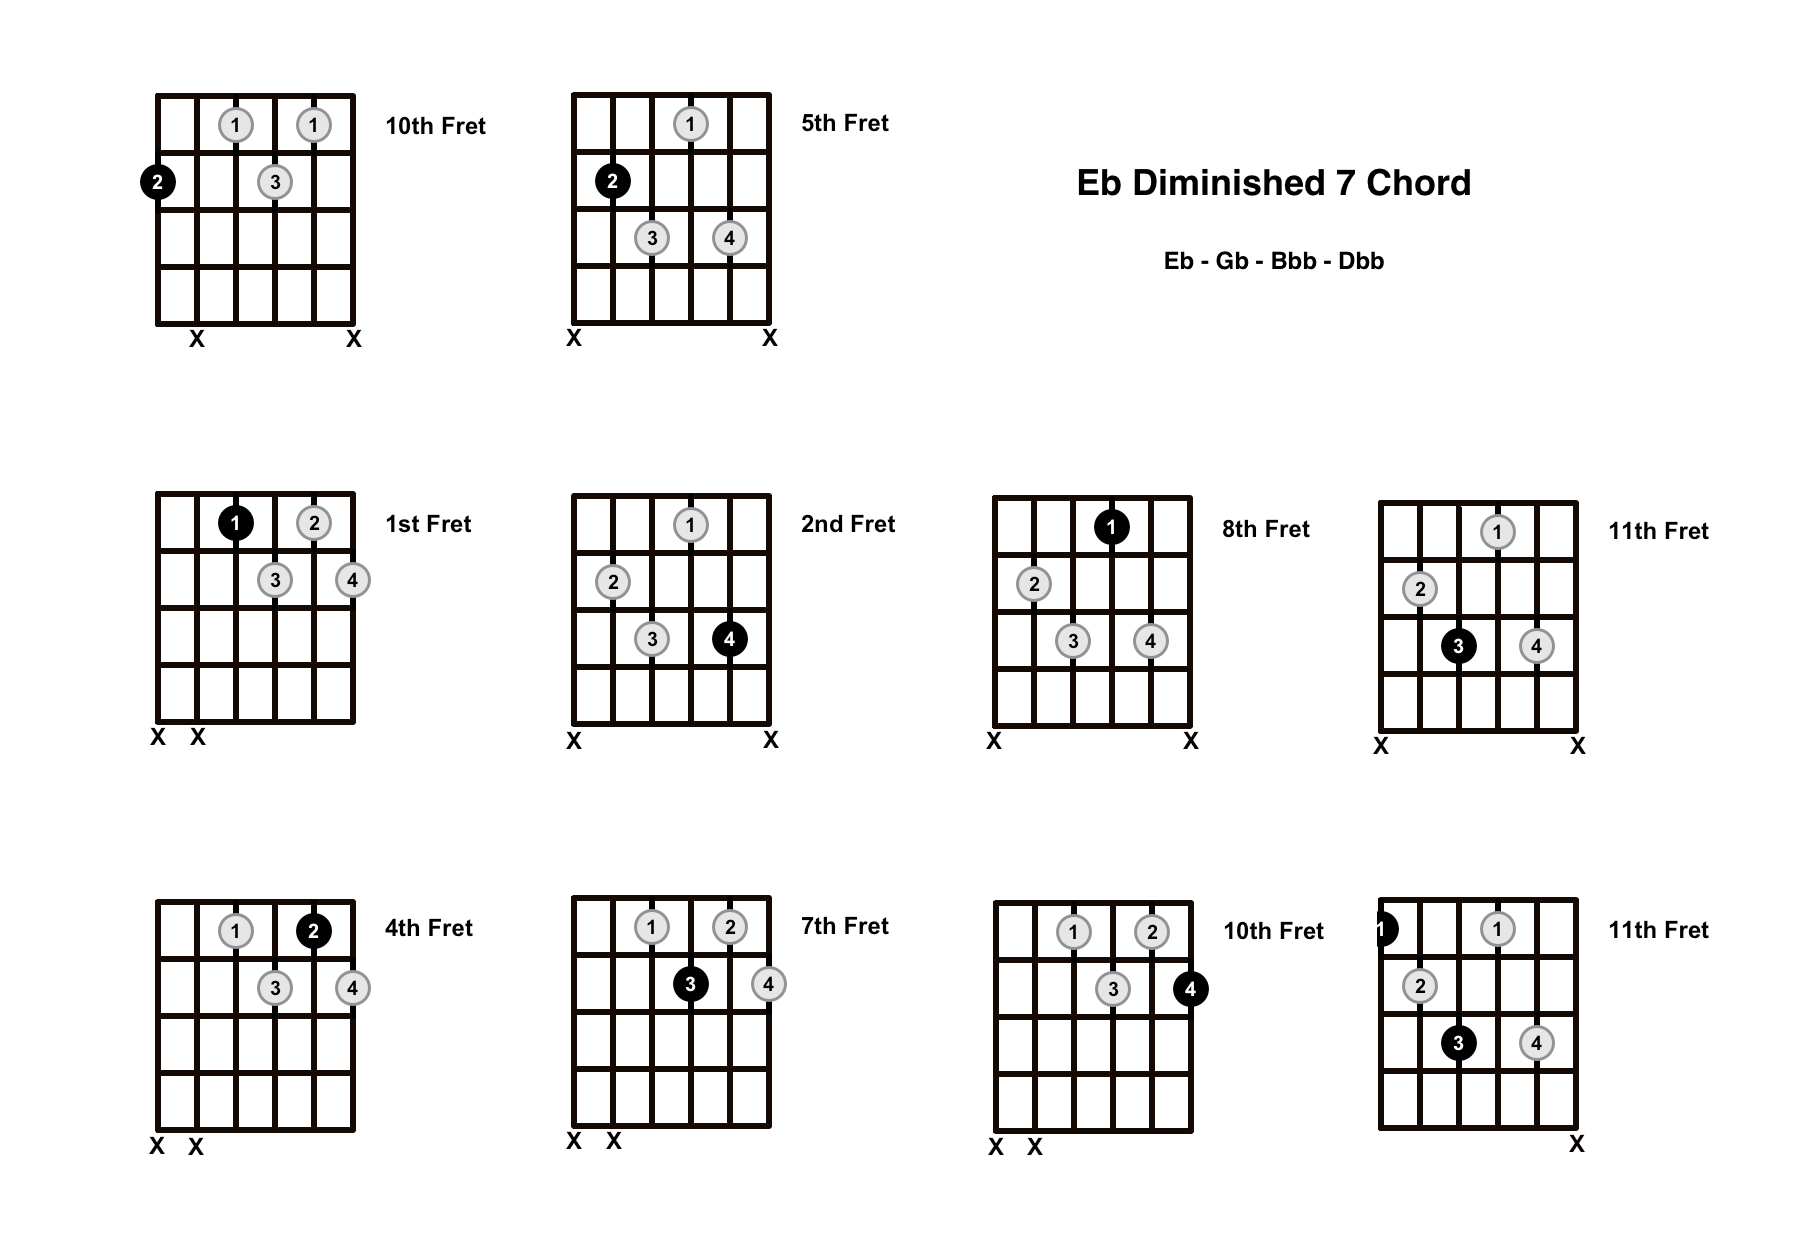 Eb Diminished 7 Chord On The Guitar (E Flat Dim 7) – Diagrams, Finger Positions and Theory